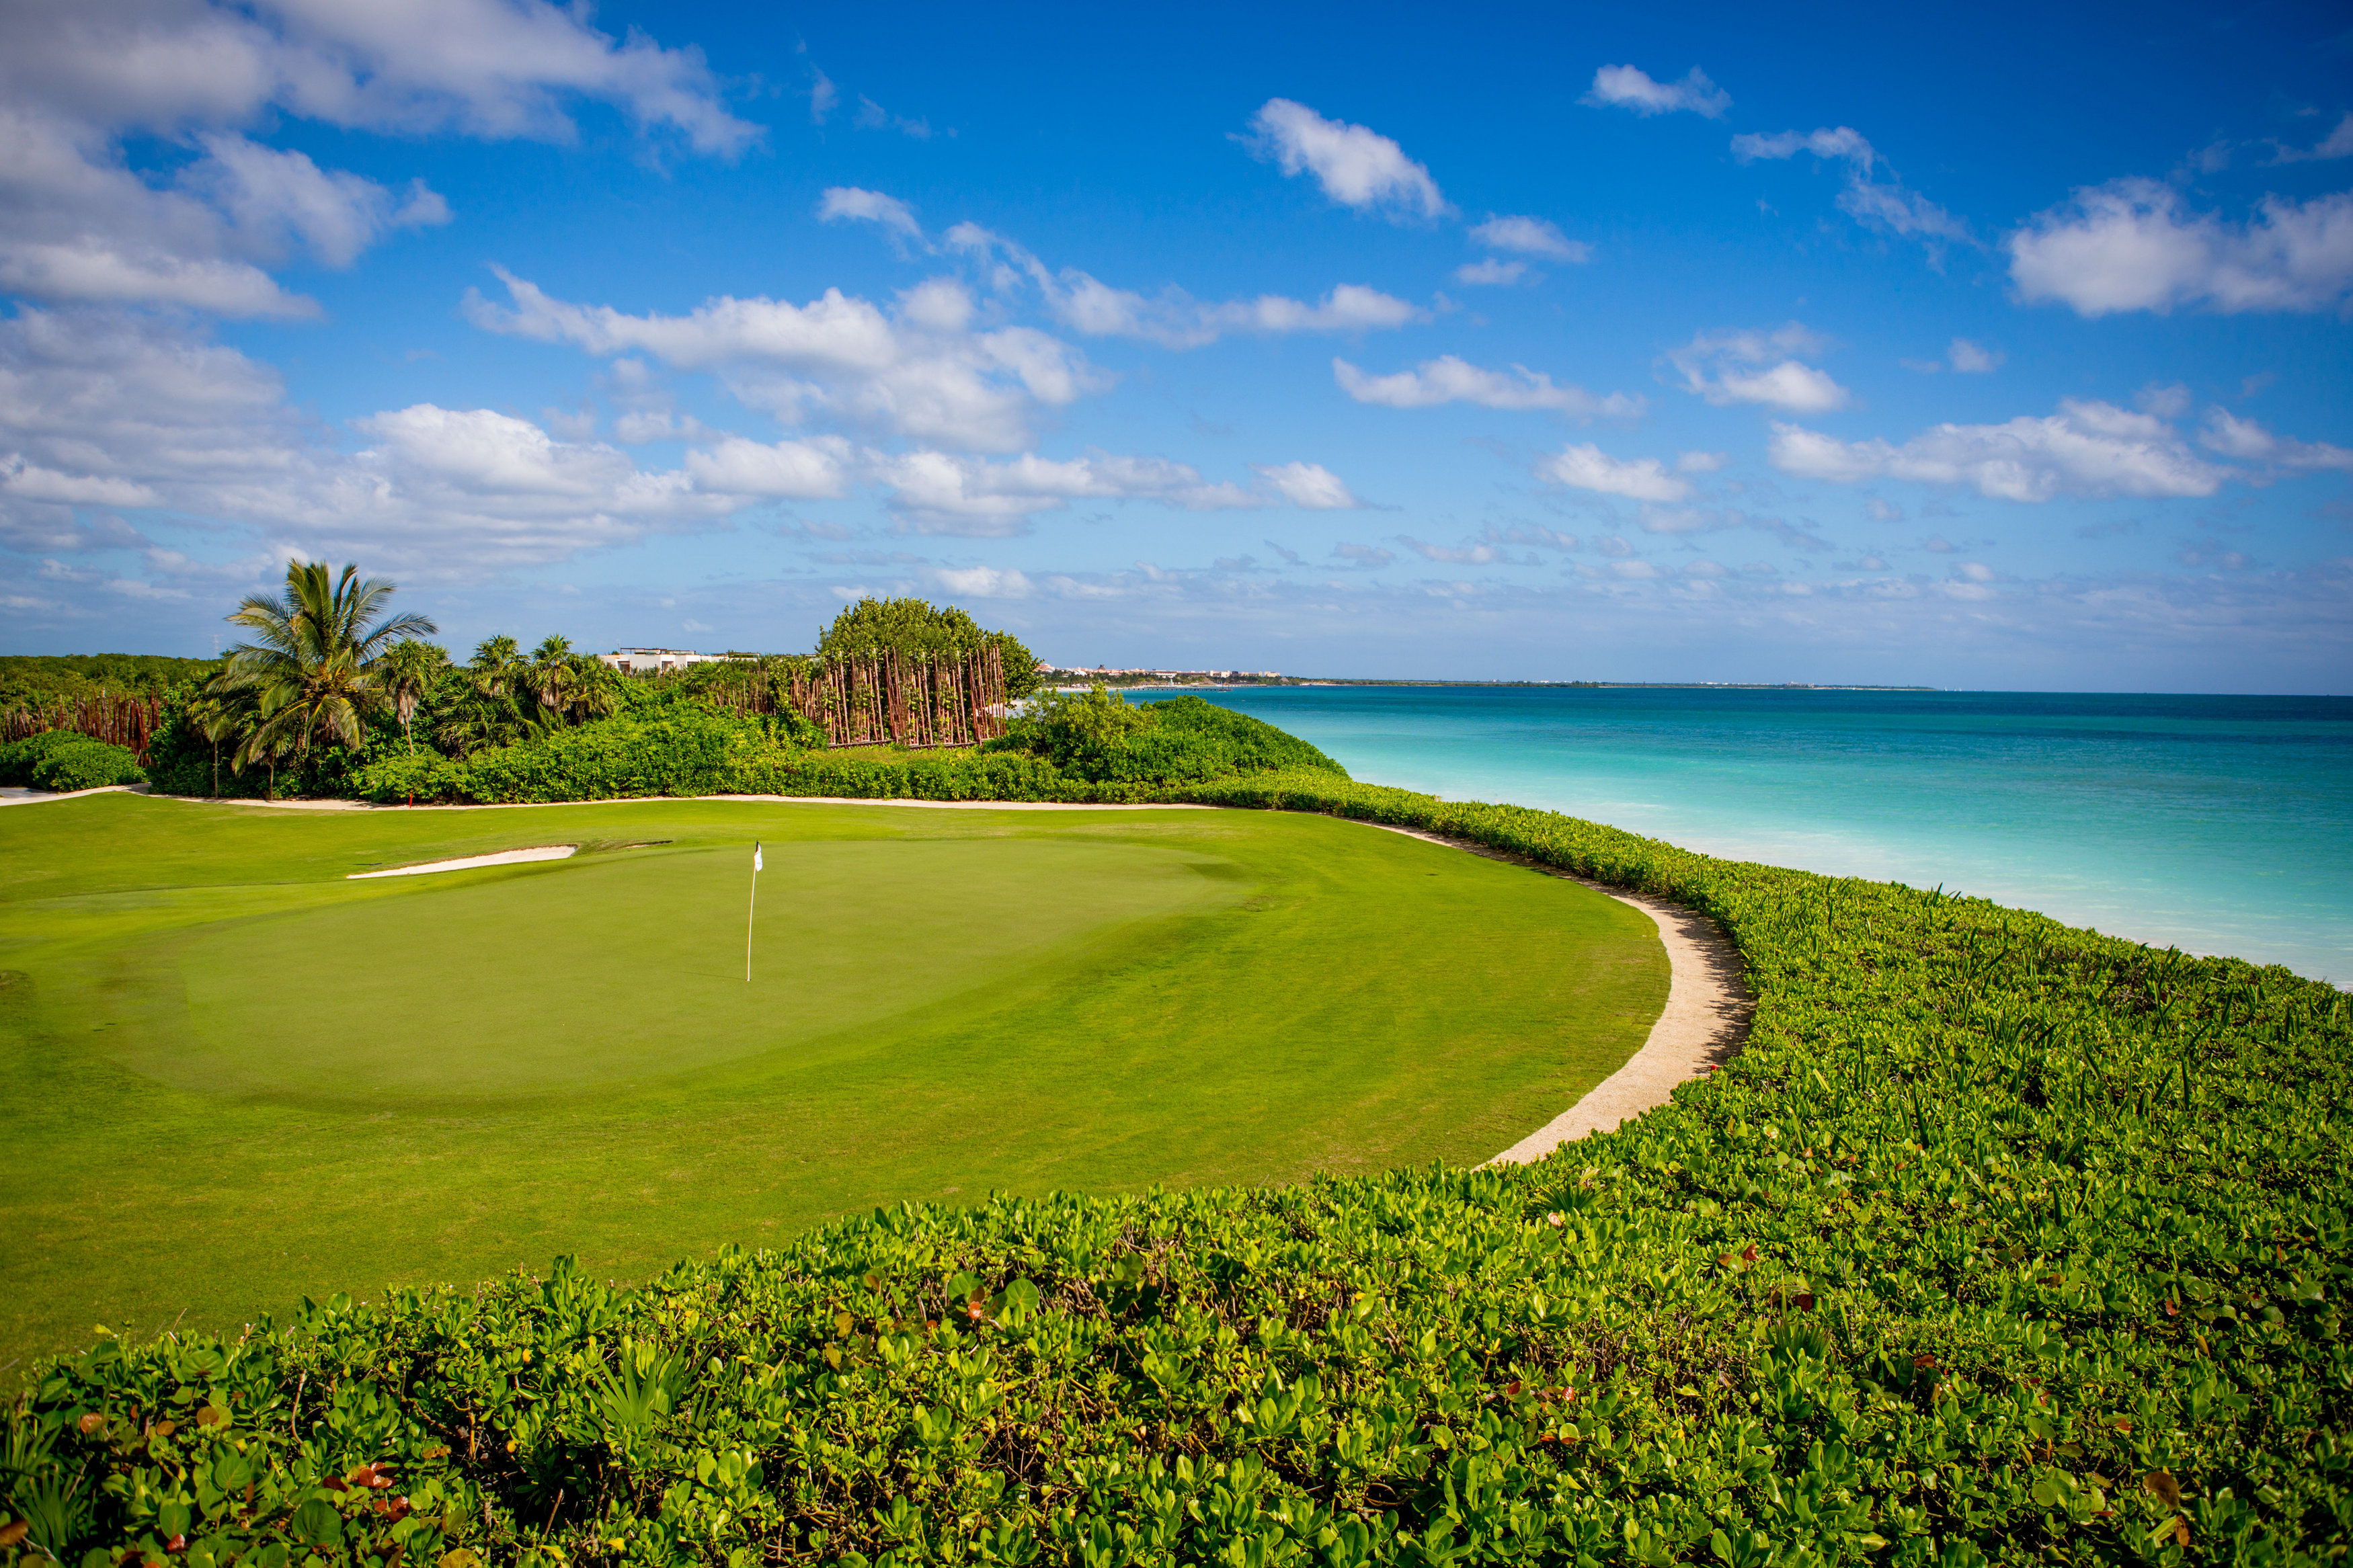 View-of-the-7th-Green-with-the-Caribbean-Sea-in-the-background.-Par-3